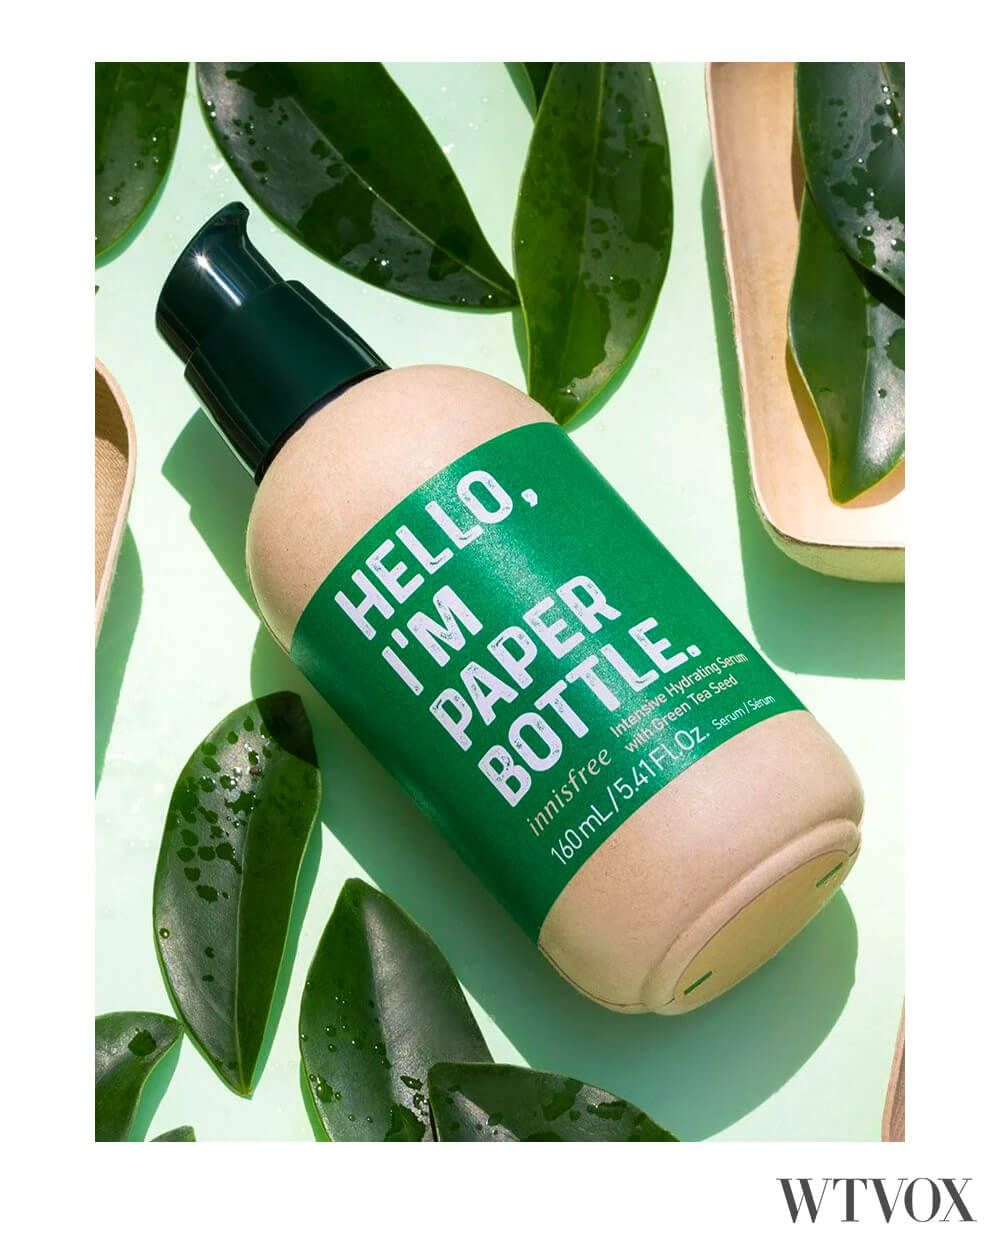 Plastic free packaging for cosmetics and haircare